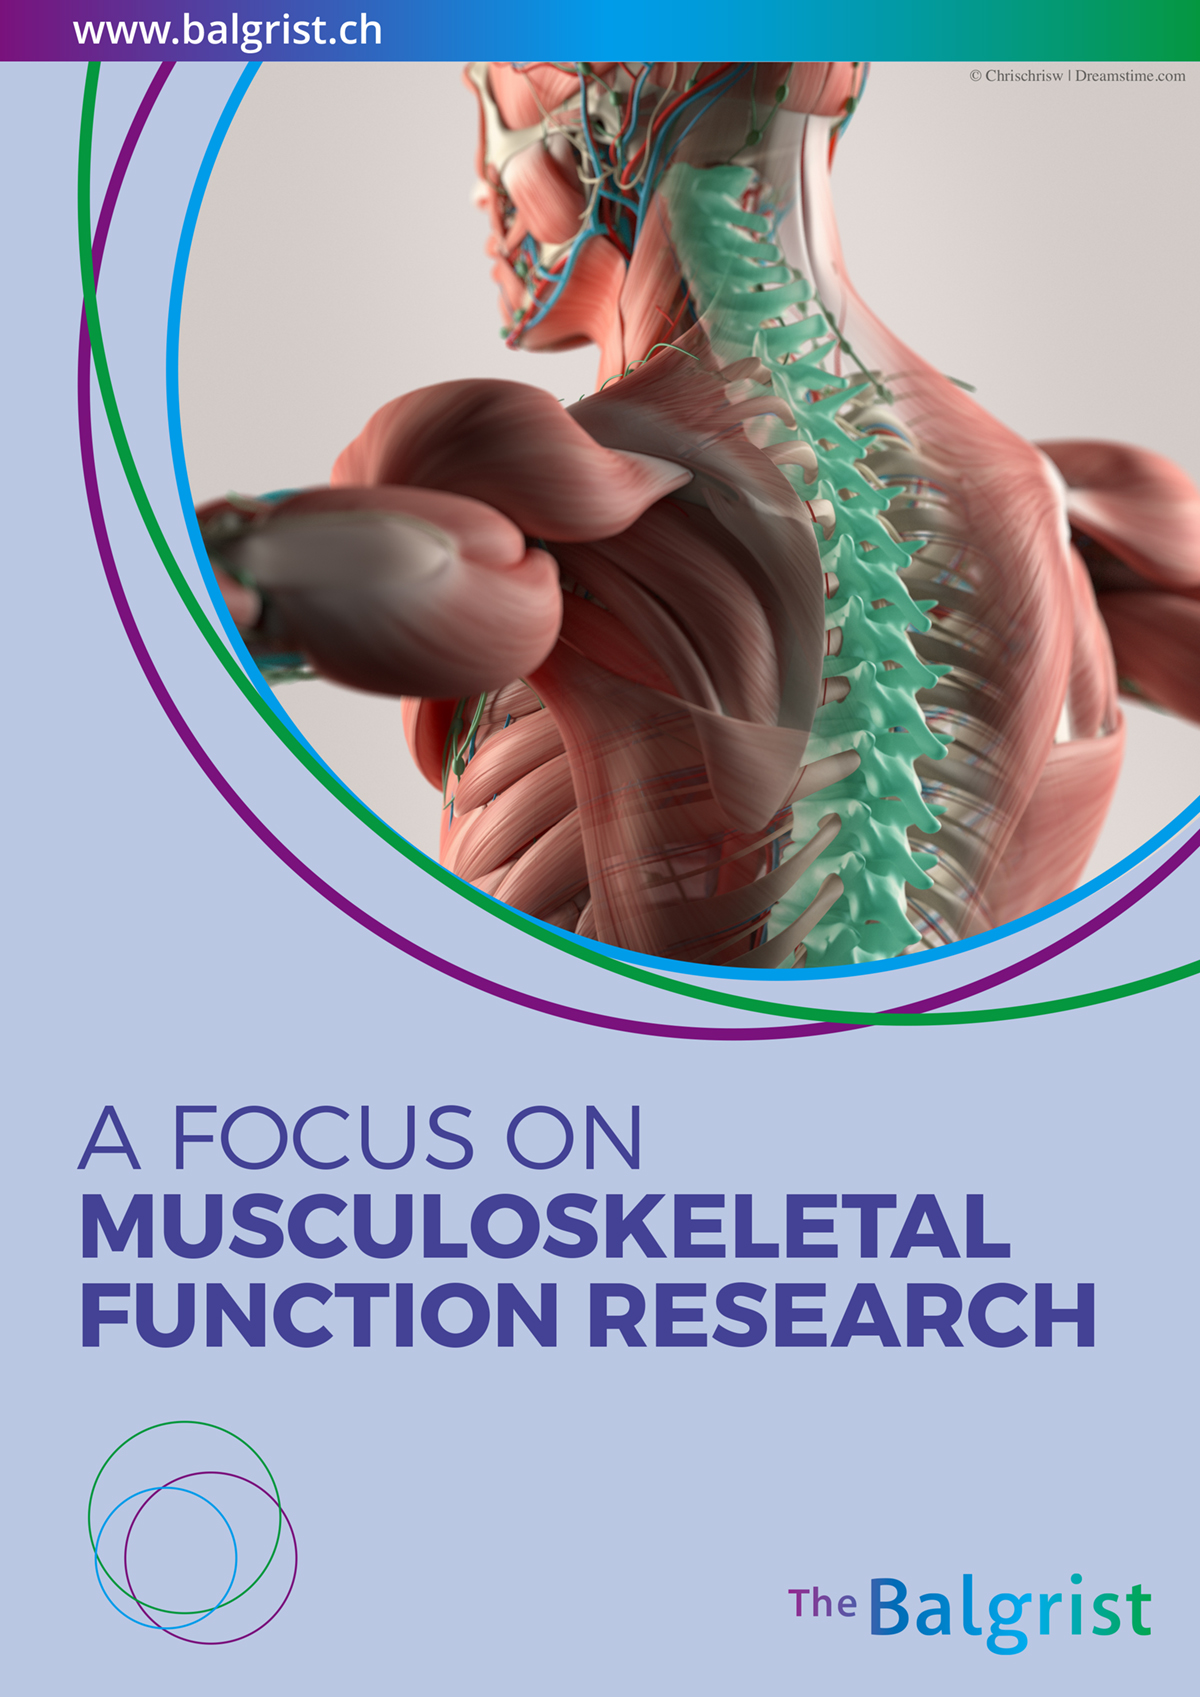 musculoskeletal function research